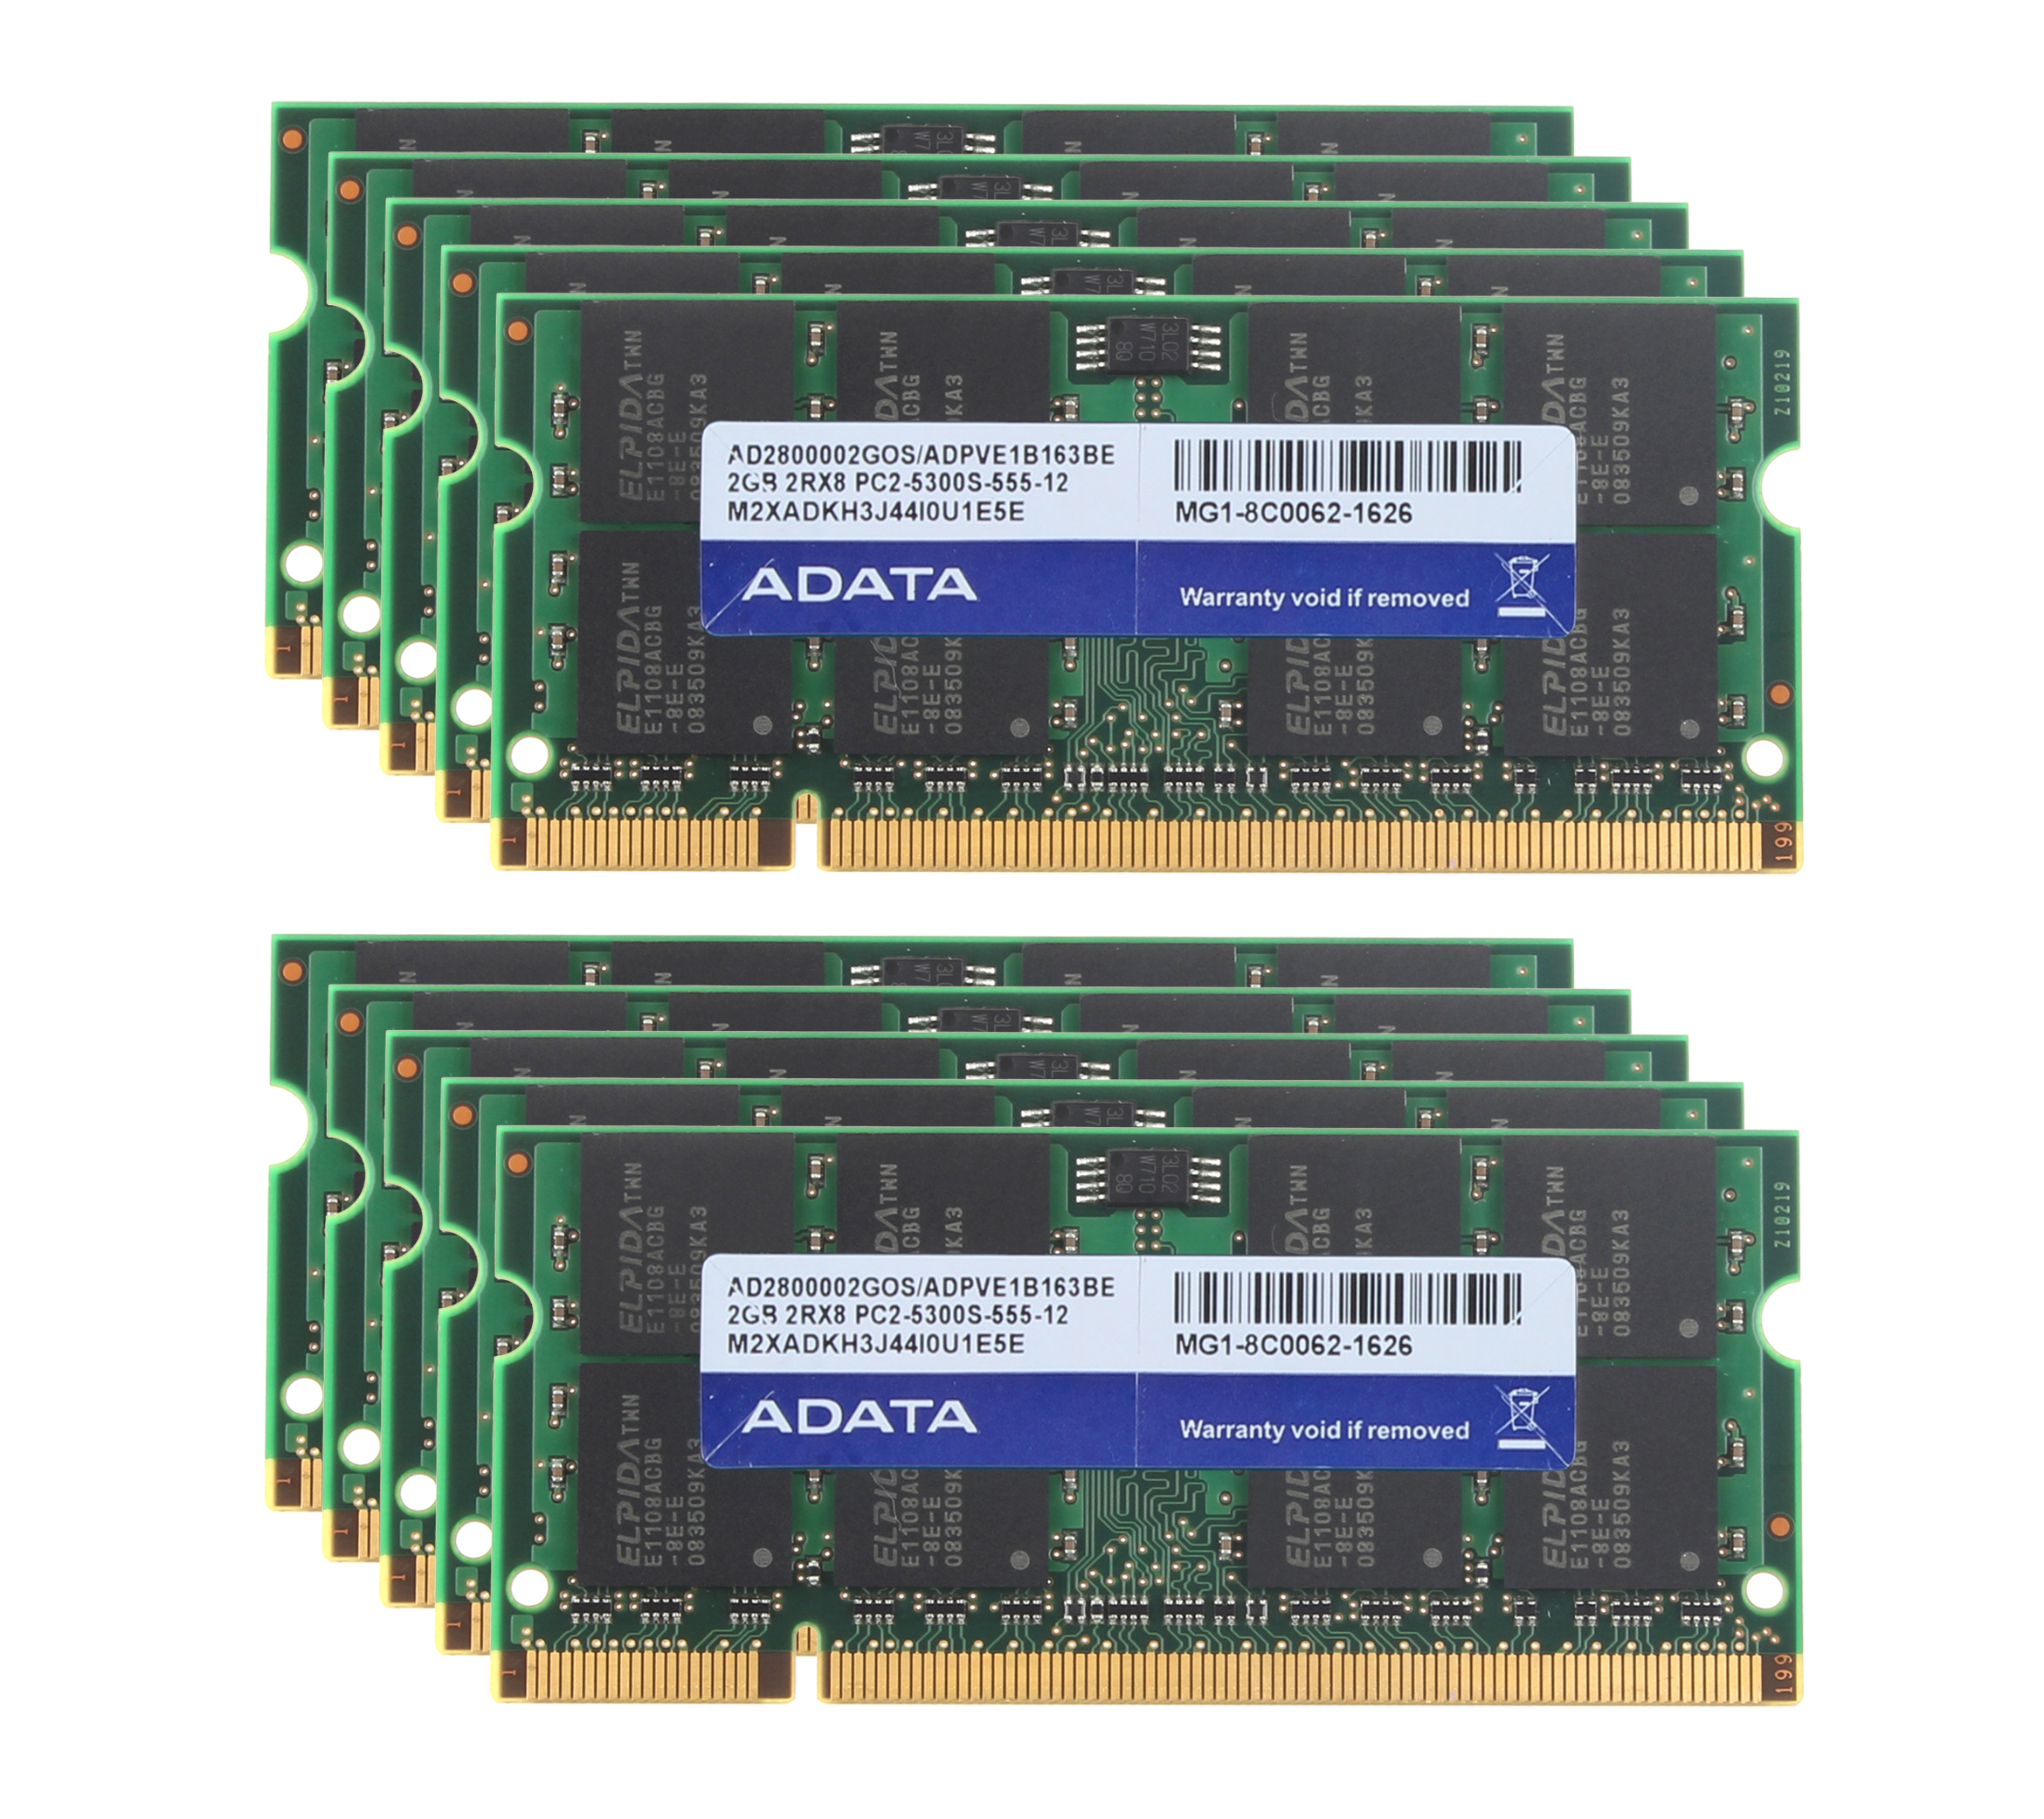 Adata 10pcs 2GB PC2-5300S Laptop Module DDR2 667Mhz Notebook SODIMM RAM Memory #